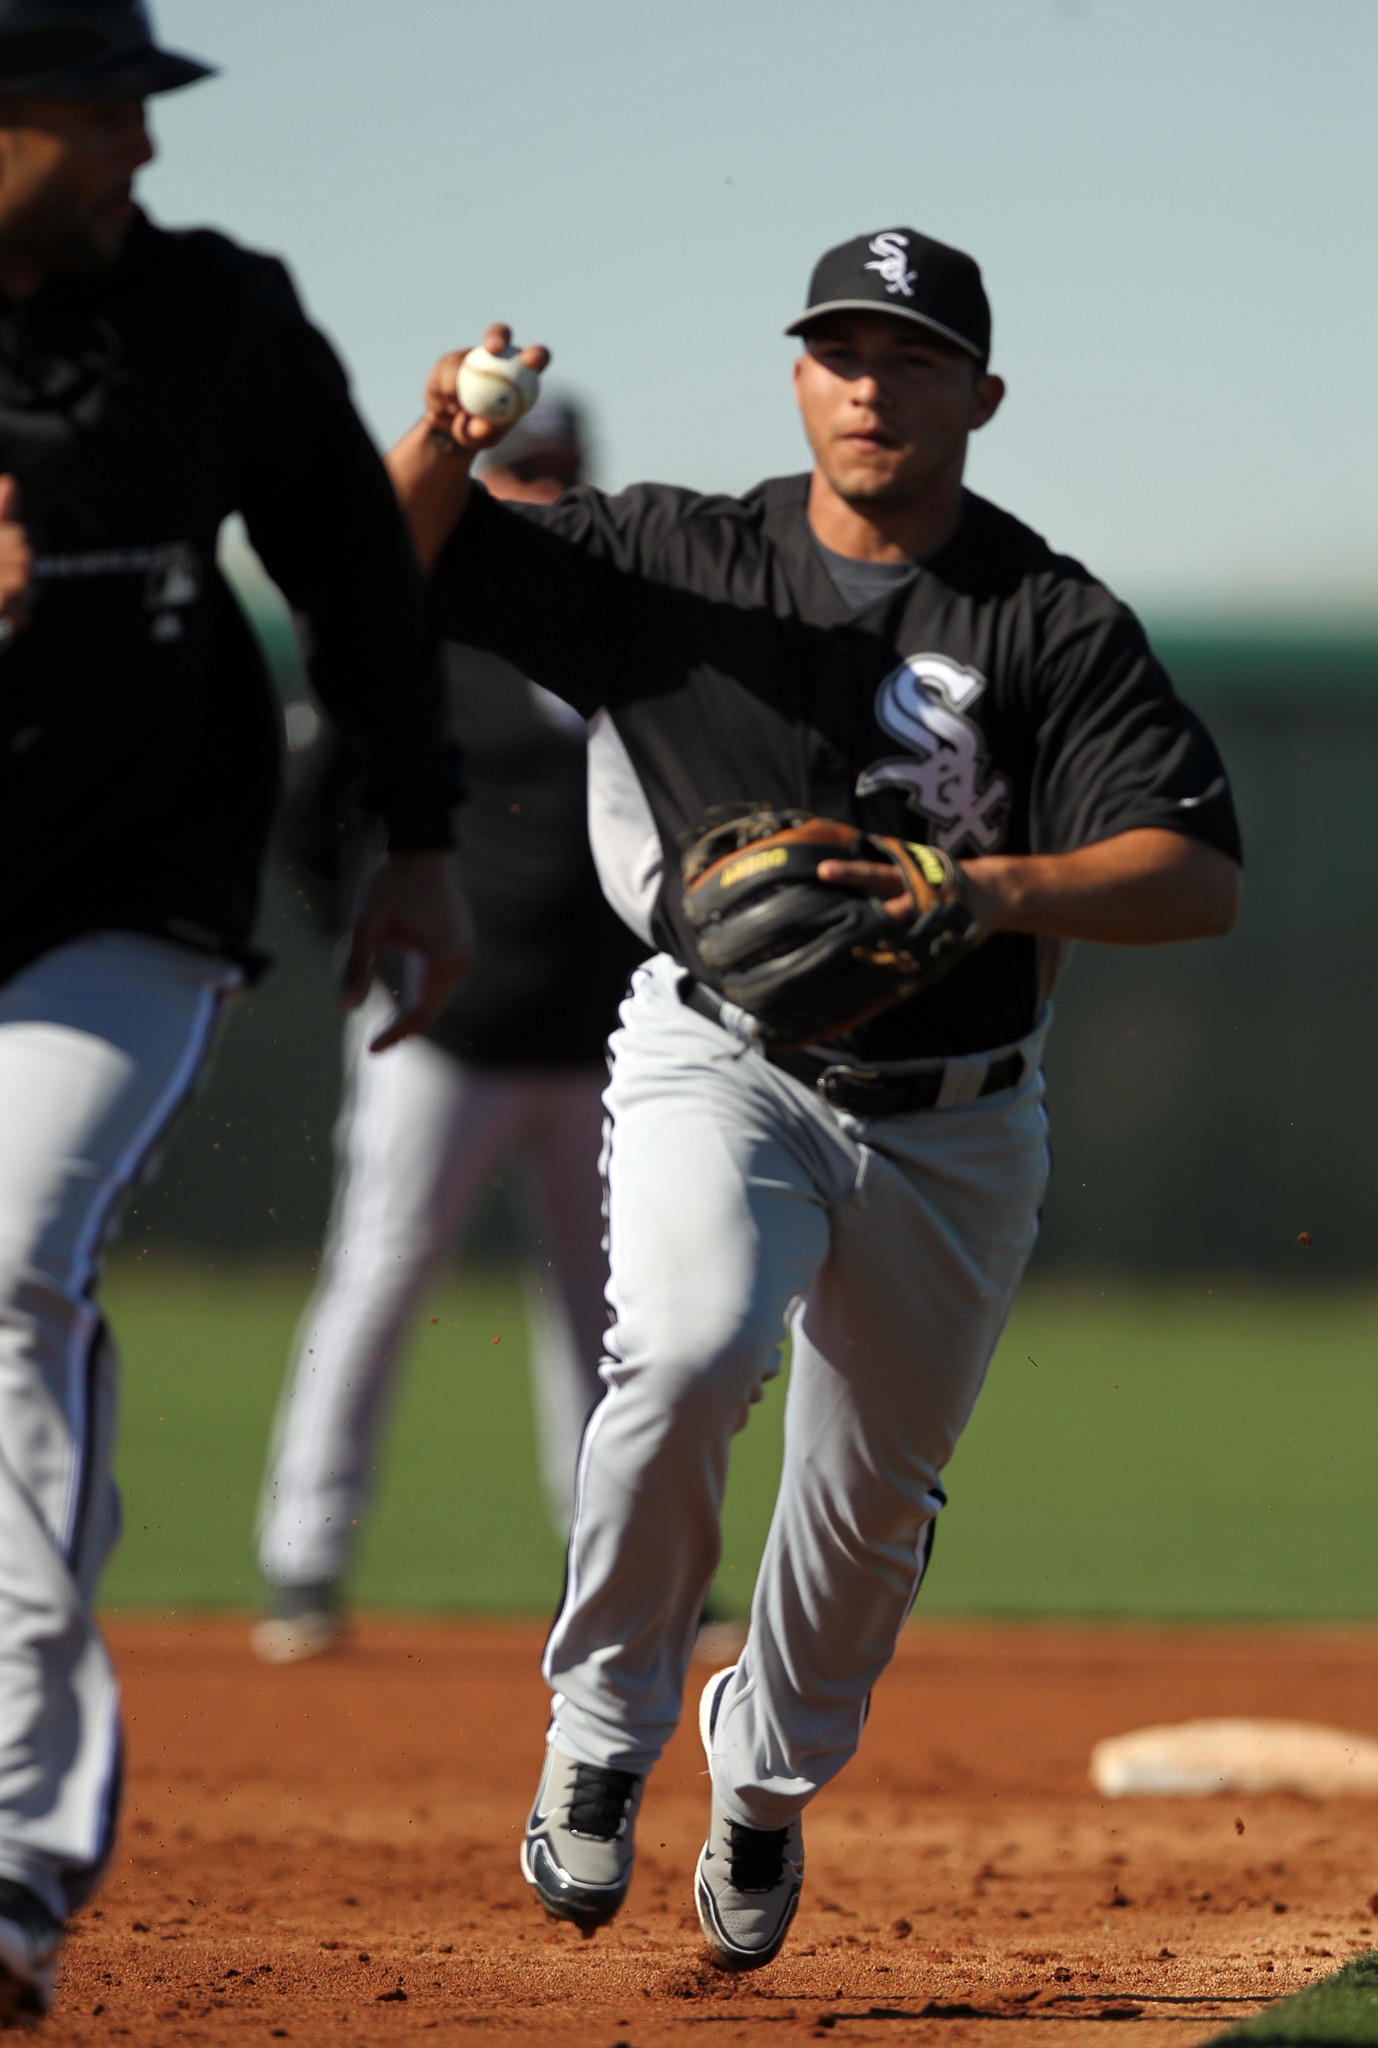 Chicago White Sox' Carlos Sanchez during Spring Training at Camelback Ranch in Glendale, Arizona on Friday, Feb. 22, 2013.